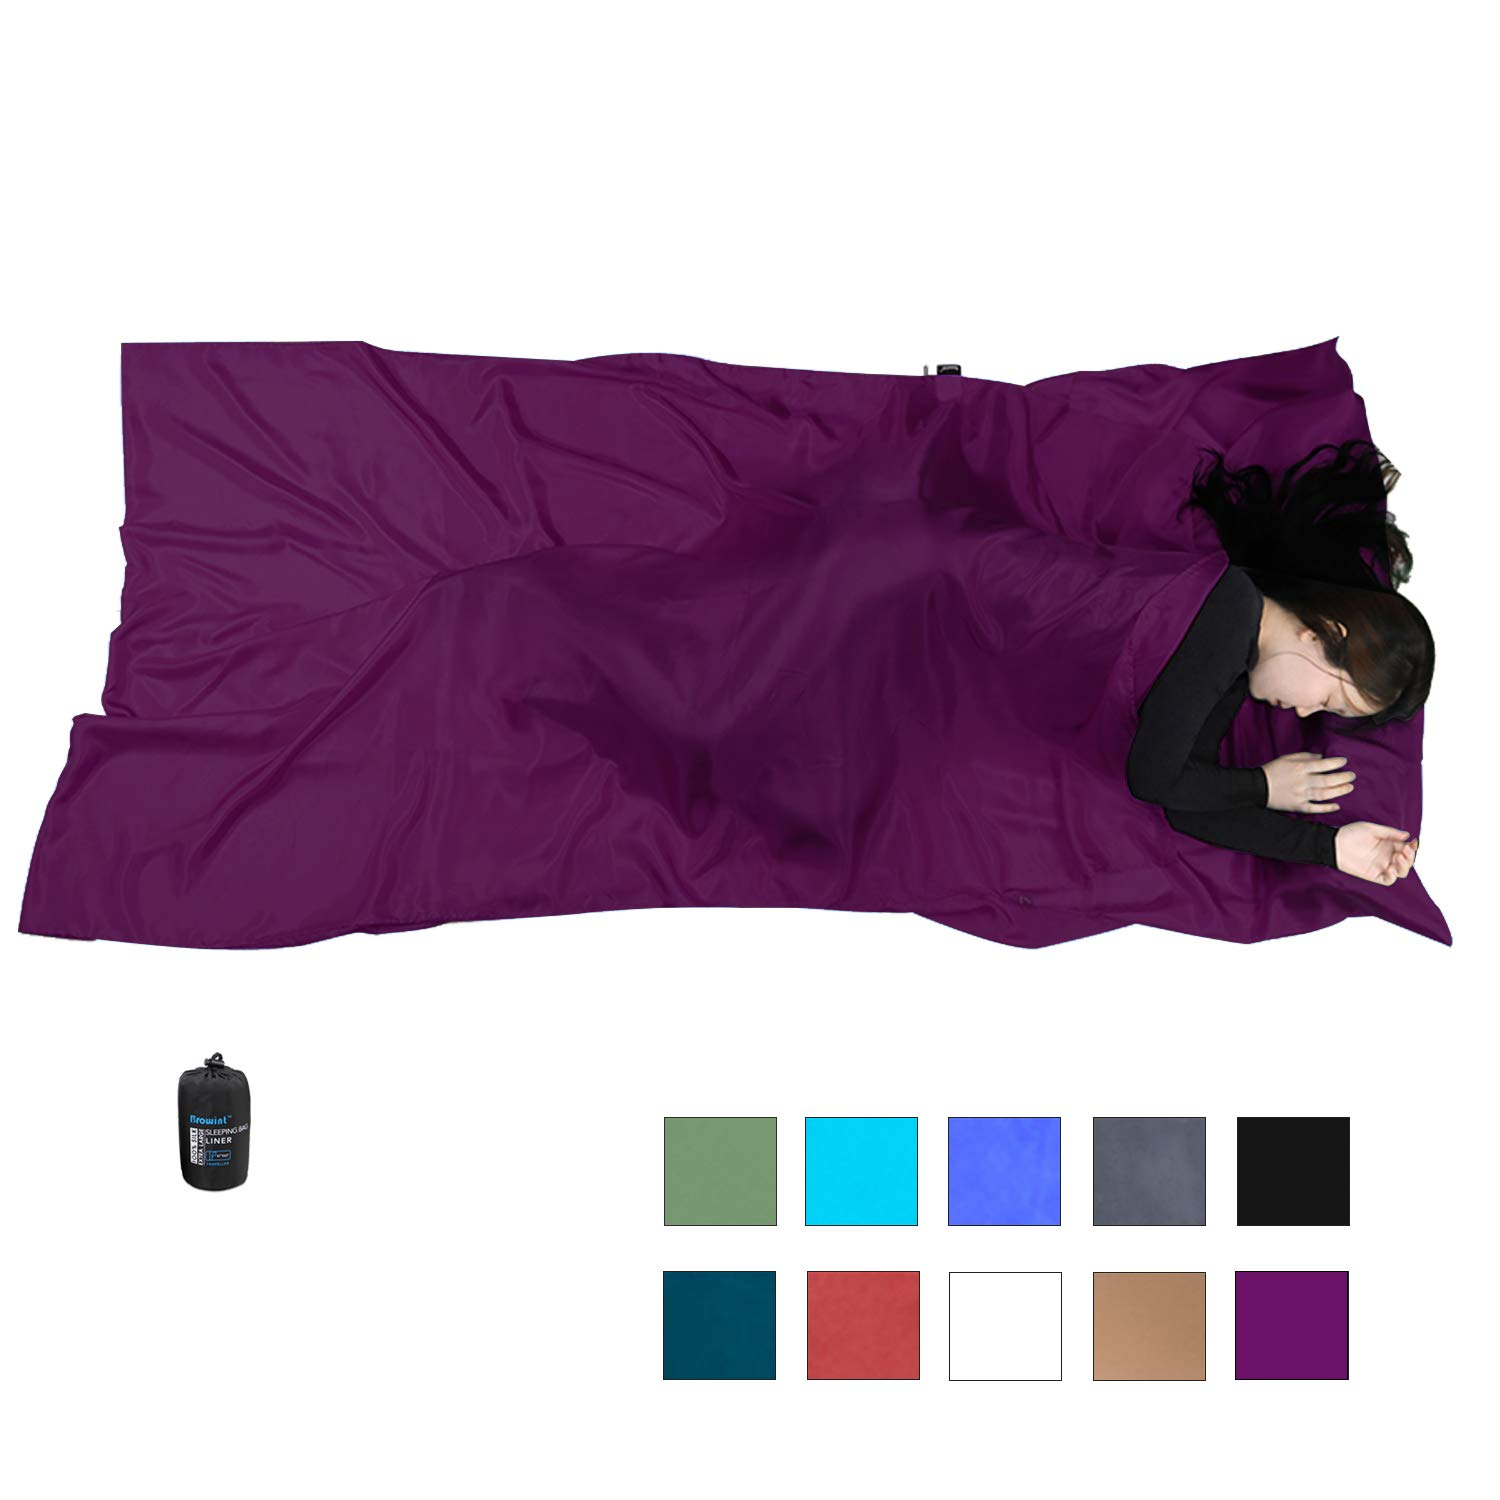 Browint Silk Sleeping Bag Liner, Silk Sleep Sack, Extra Wide 87''x43'', Lightweight Travel Sheet for Hotels, More Colors for Option, Reinforced Gussets